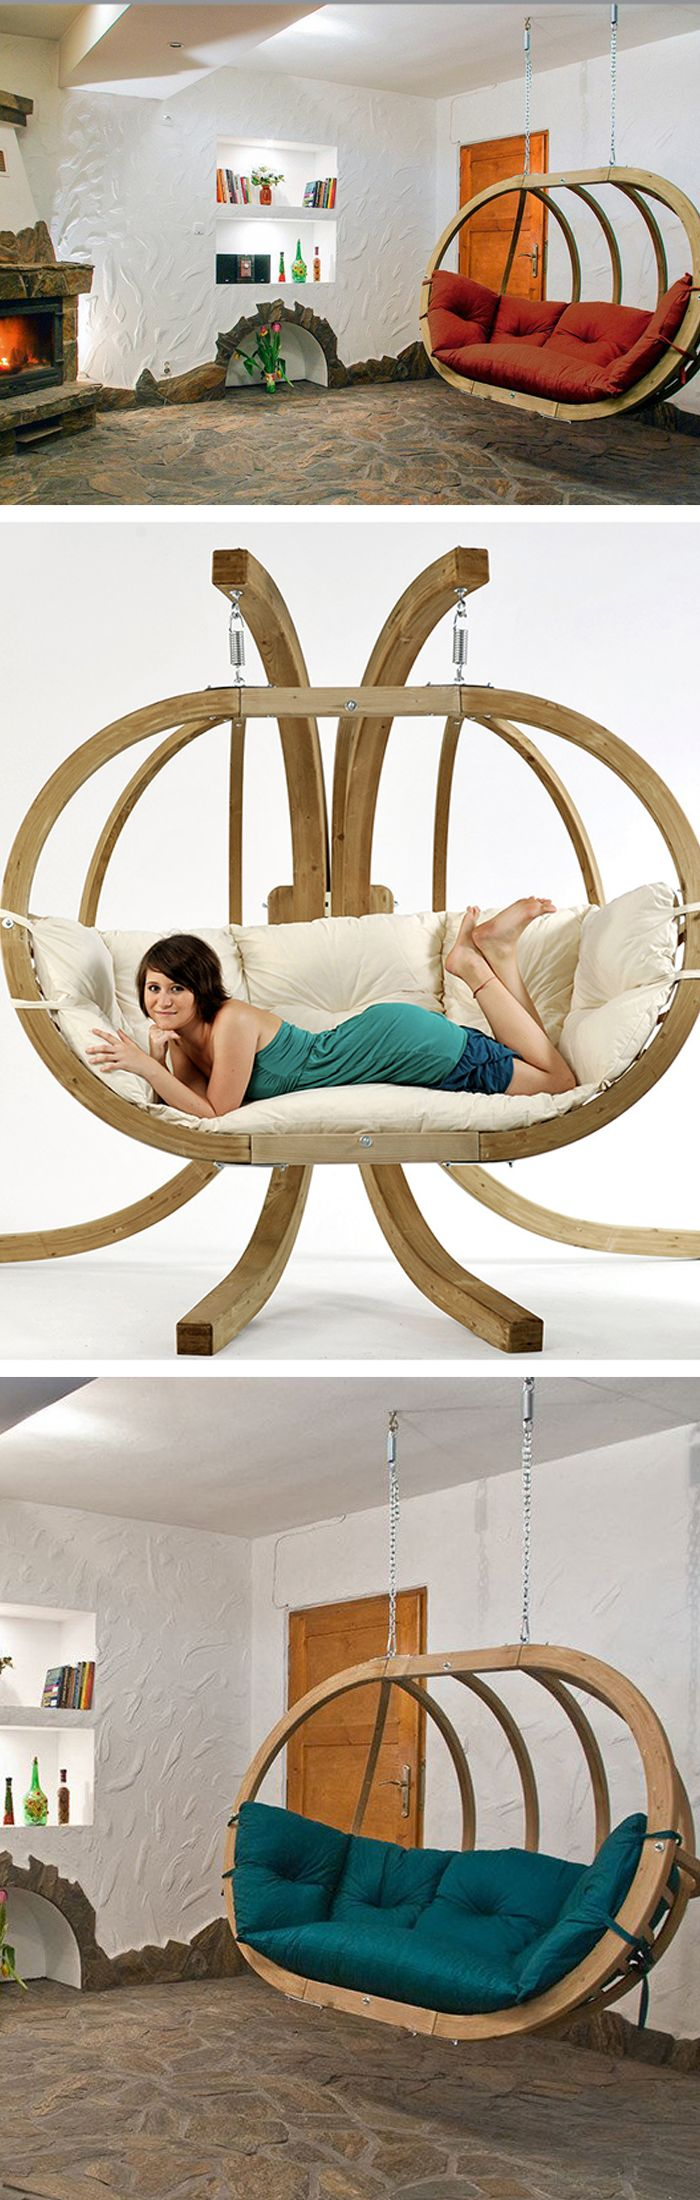 We love the Globo Hanging Chair because you can use it with the Royal Stand or hang it from the ceiling.   Hammocks > Couches.  https://hammocktown.com/collections/globo-hammocks